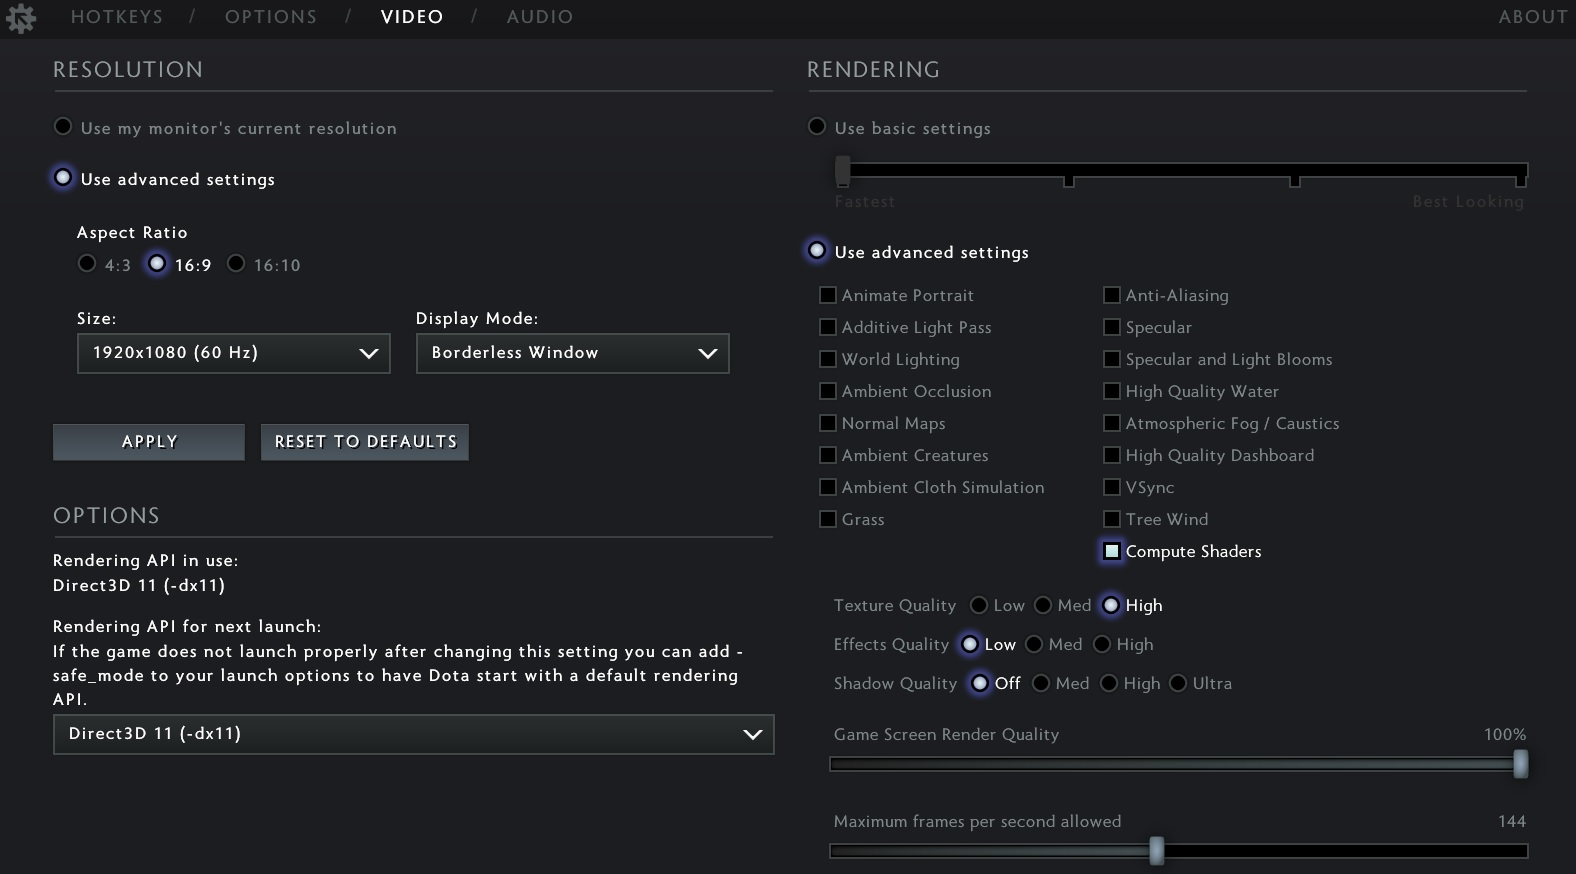 How to increase FPS in Dota 2: video settings and launch options